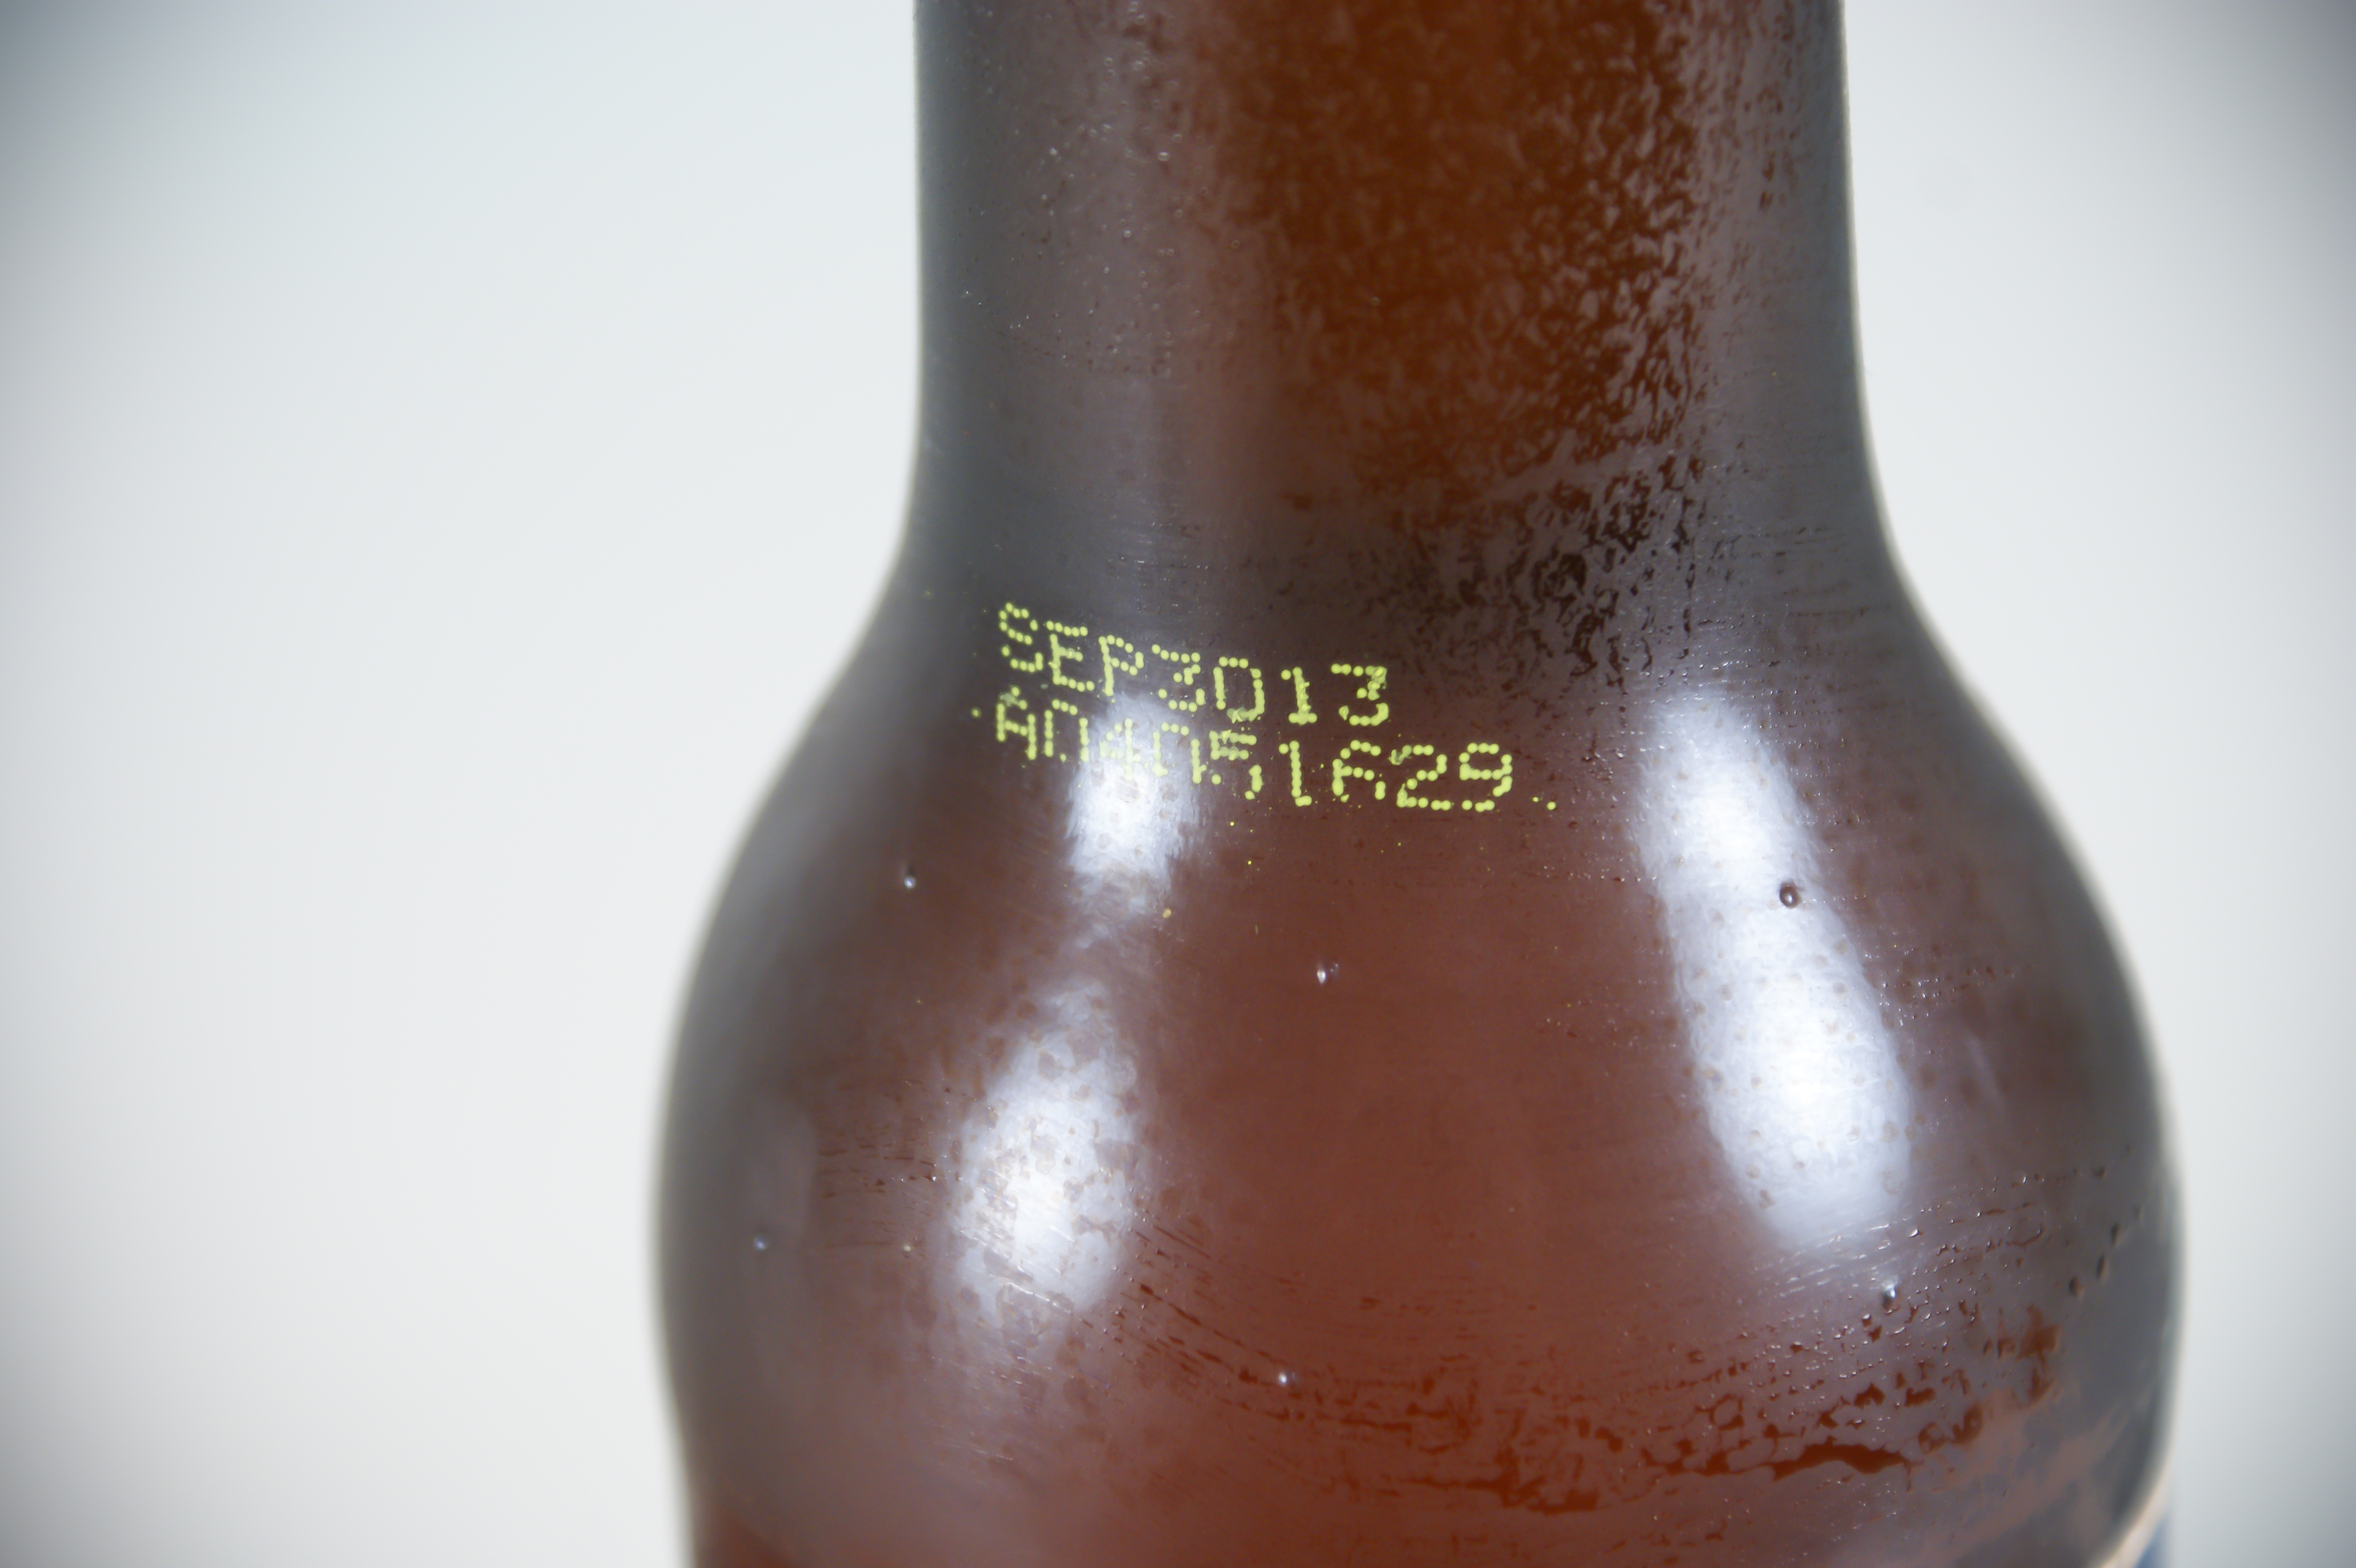 Beer expiration date in Sydney